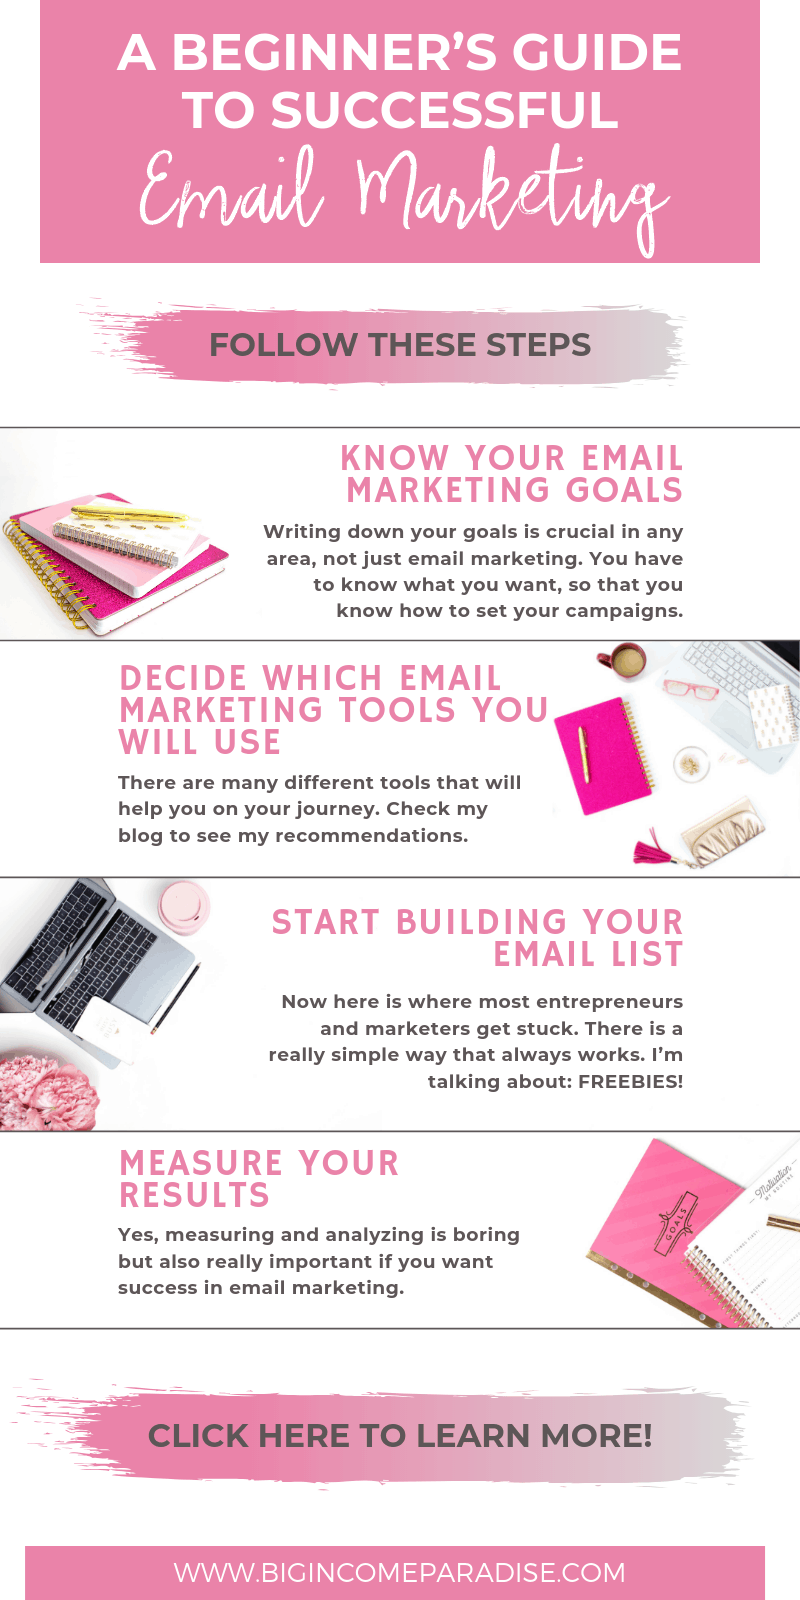 Here is a beginner's guide to successful email marketing. If you are doing business online, then it's smart to include an email marketing strategy. In this guide, you will learn everything you need to know about successful email marketing. #bigincomeparadise #emailmarketing #emailmarketing101 #emailmarketingstrategy #emaillist #growingyouremaillist #buildingyouremaillist